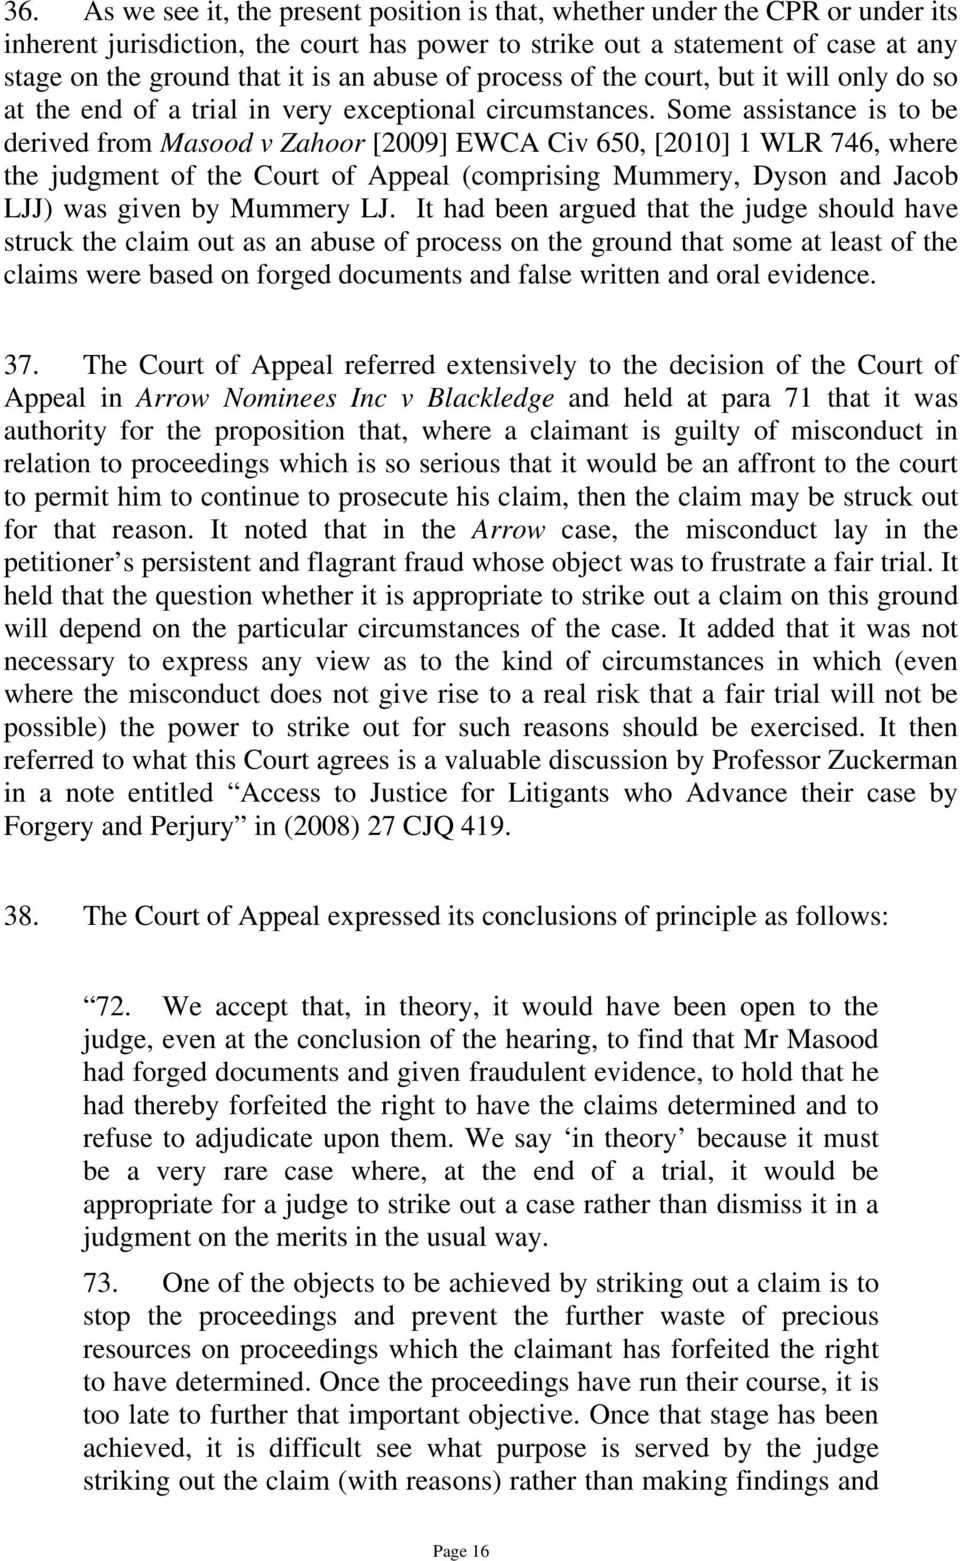 Some assistance is to be derived from Masood v Zahoor [2009] EWCA Civ 650, [2010] 1 WLR 746, where the judgment of the Court of Appeal (comprising Mummery, Dyson and Jacob LJJ) was given by Mummery